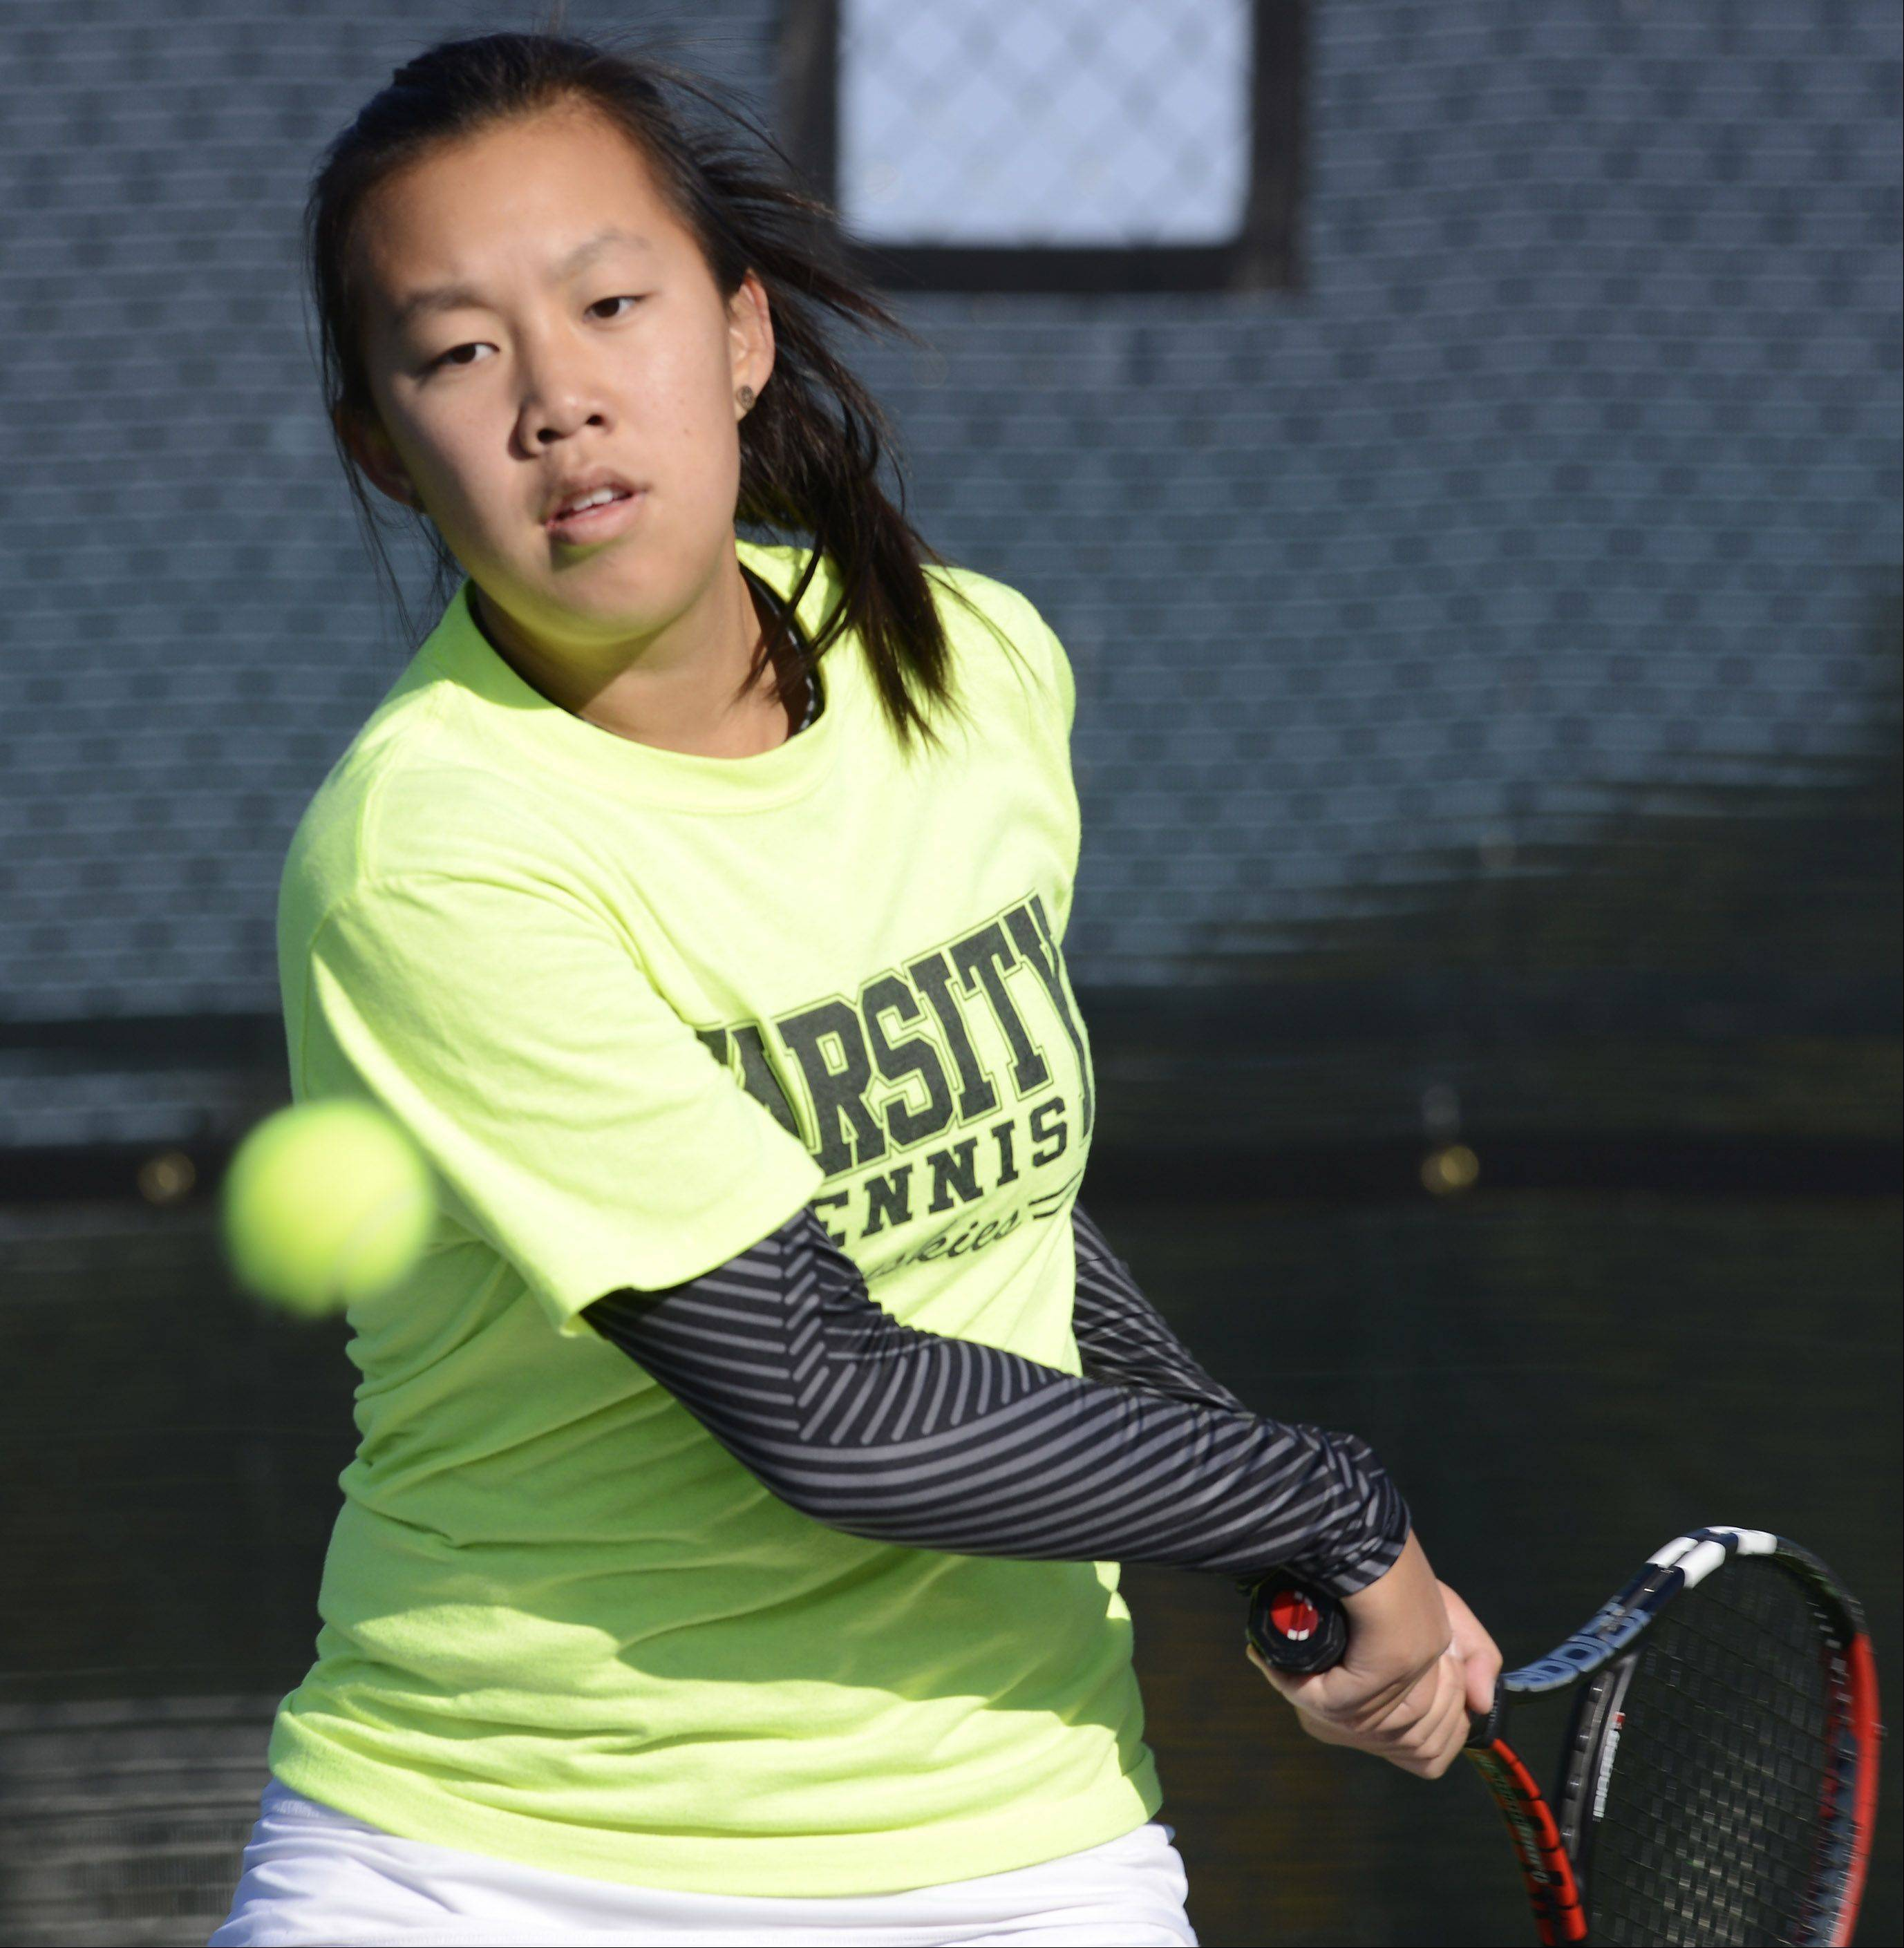 Naperville North's Jessica Hu returns a serve during doubles play at the girls state tennis preliminaries at Prospect High School Thursday.